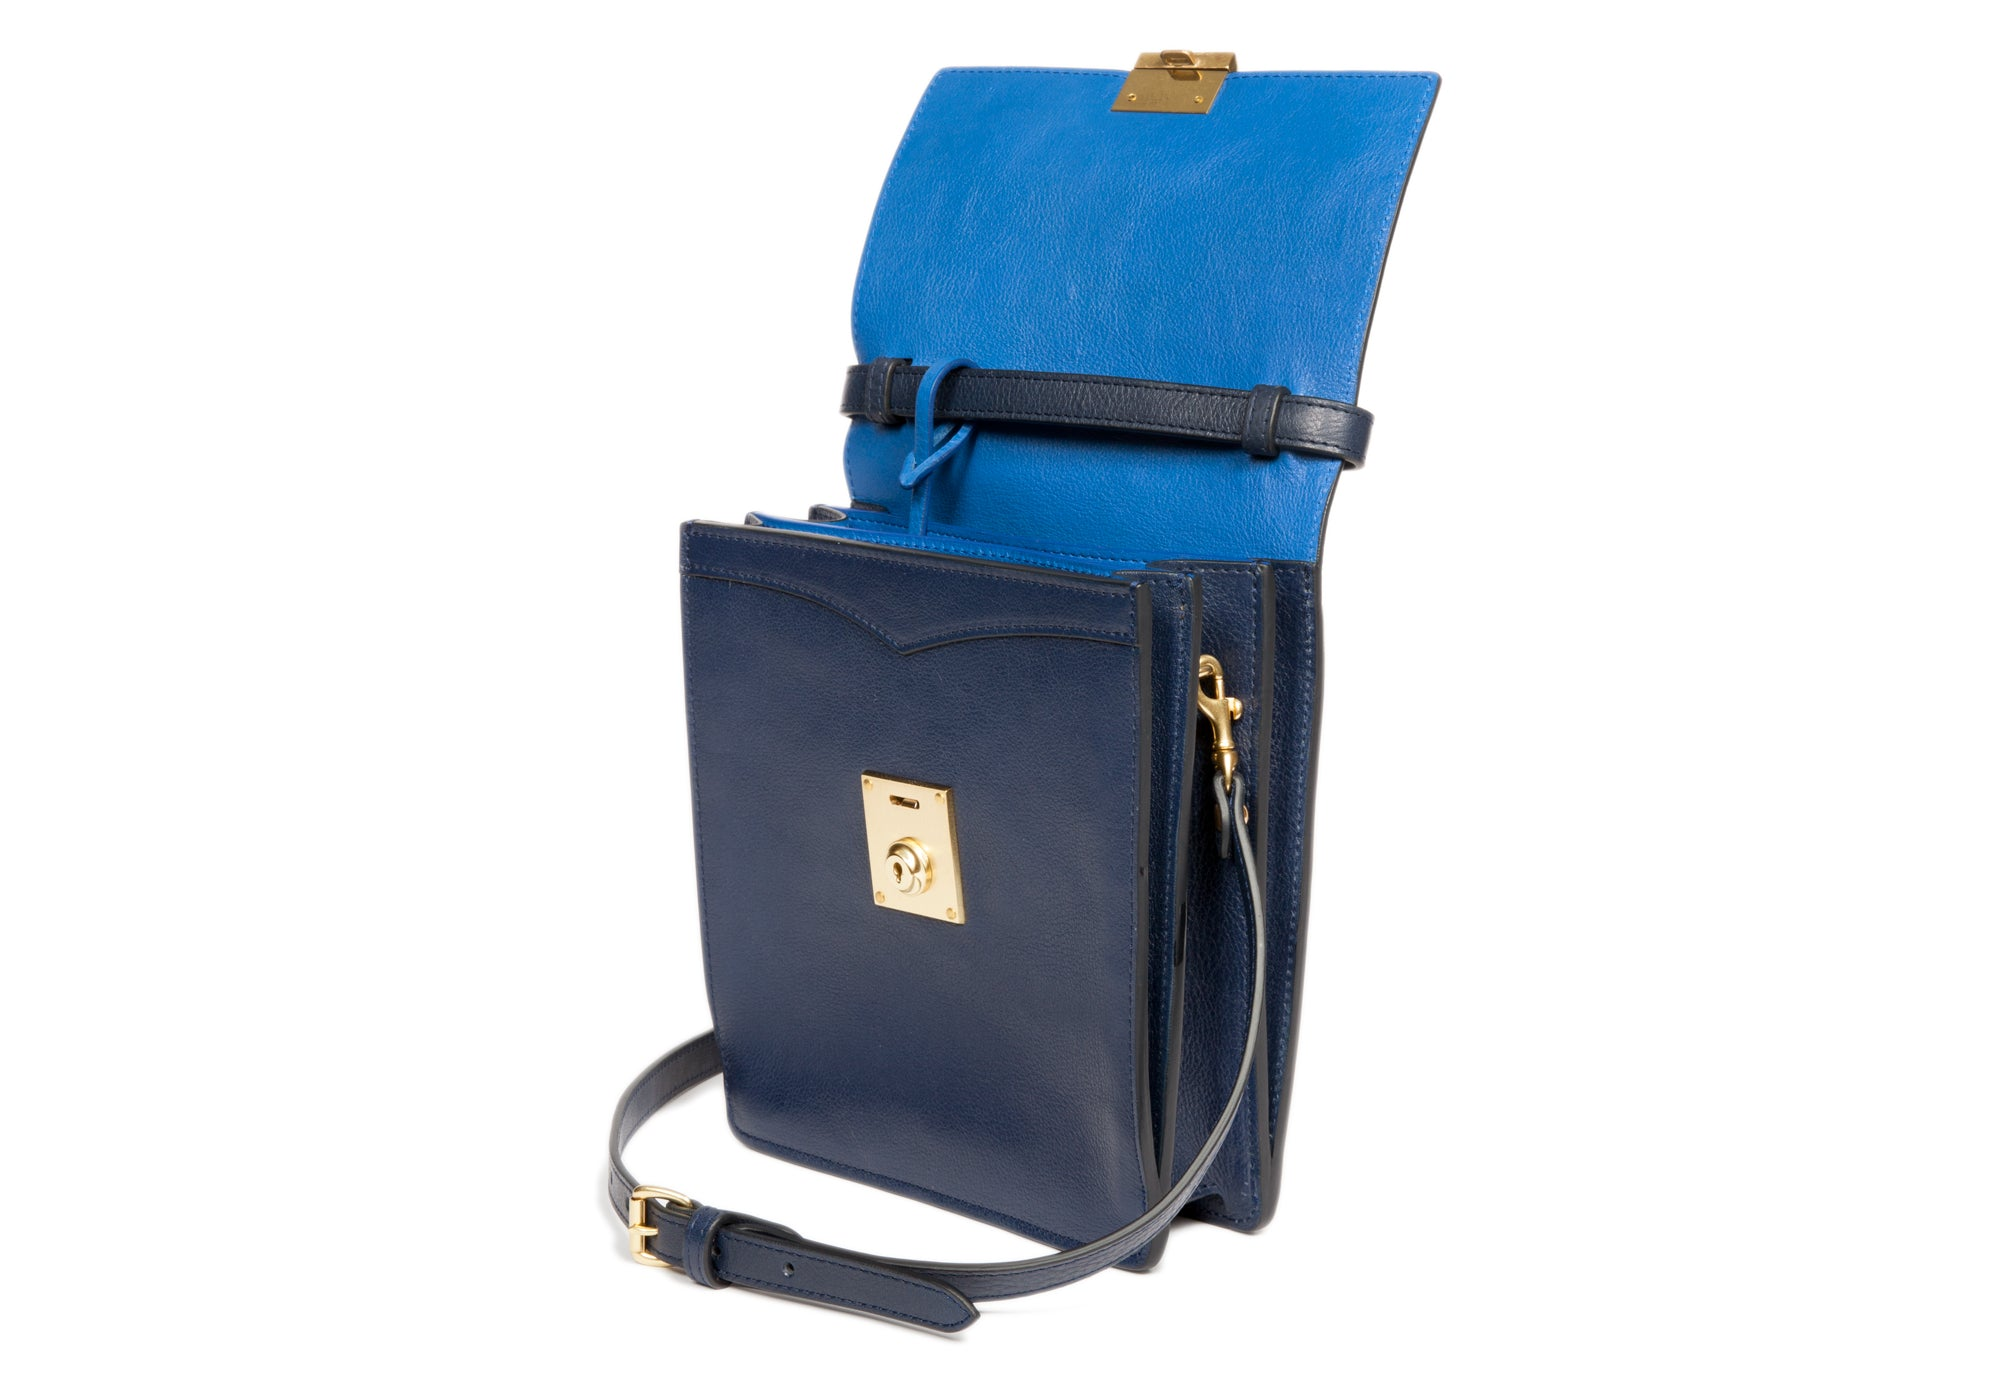 The Leather Lockbox Bag Indigo-Electric Blue